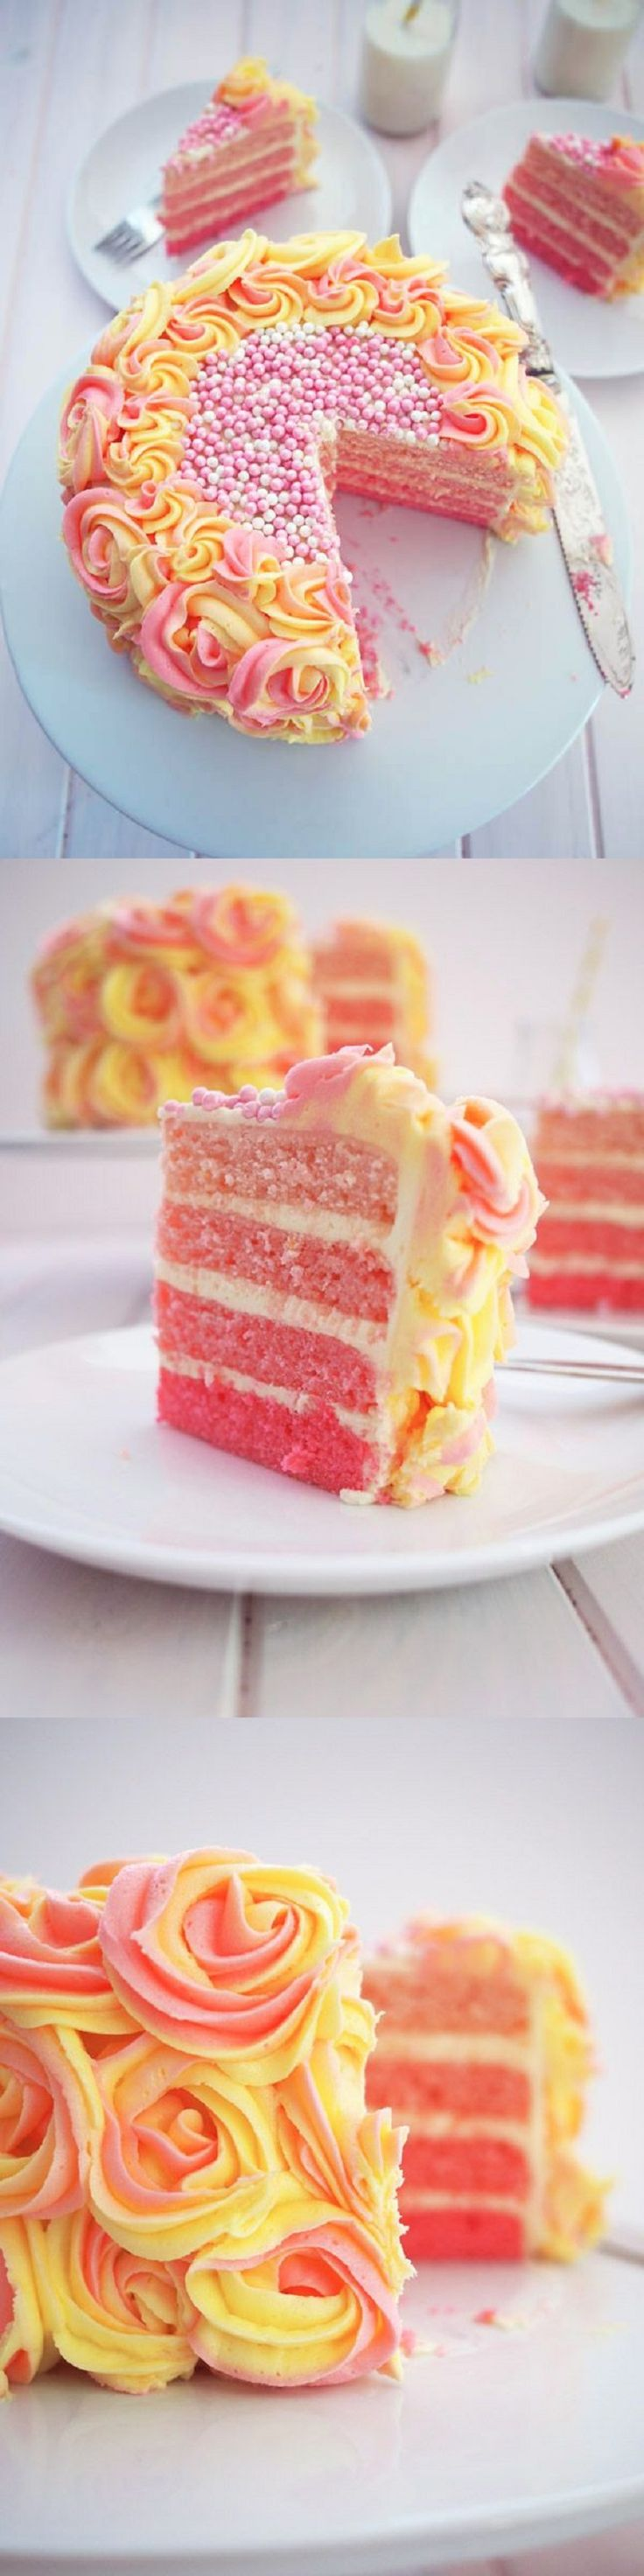 Pink Rainbow Lemonade Cake with Buttercream Icing - 15 Best Spring Dessert Ideas | GleamItUp